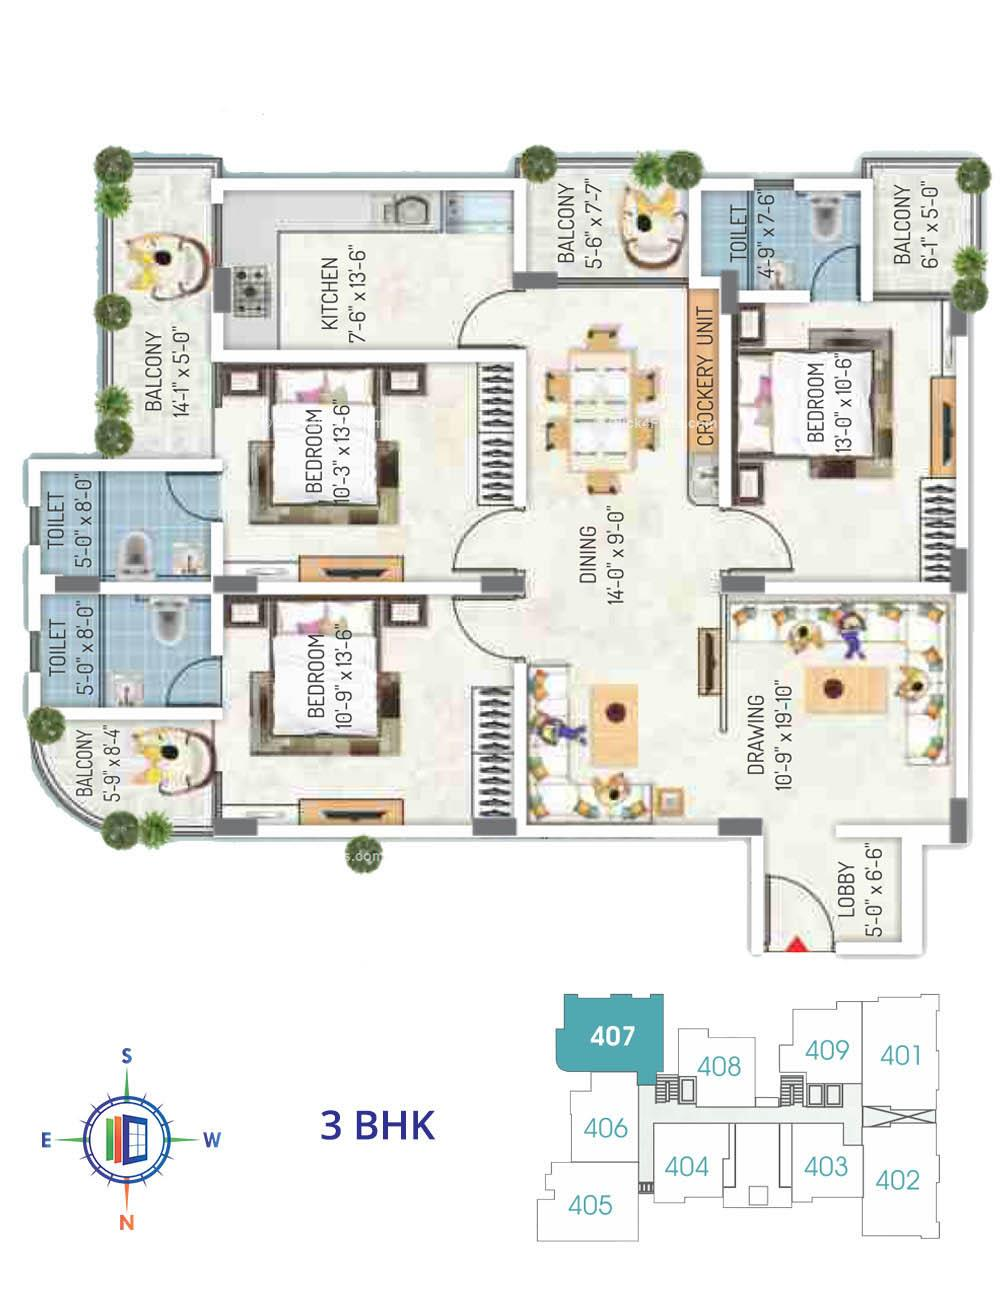 Royal Regalia 3 BHK